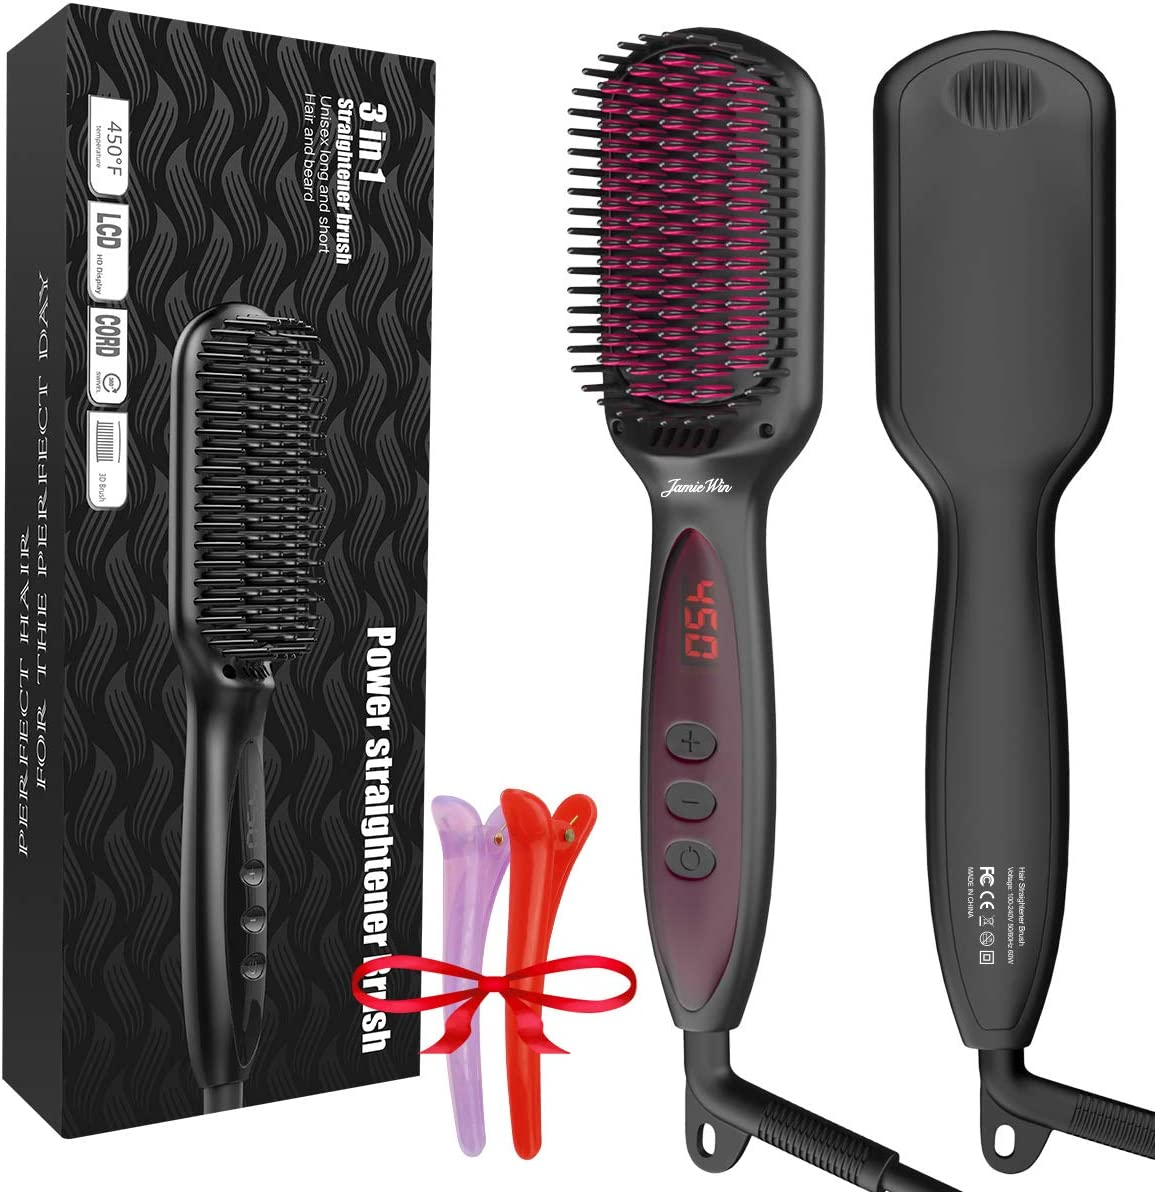 JAMIEWIN Hair Straightener Brush, Anti-Scald Ionic Hair Straightening Brush, Straightening Comb with Fast MCH Ceramic Heating, Hot Brush Hair Straightener, Auto Off, Dual Voltage